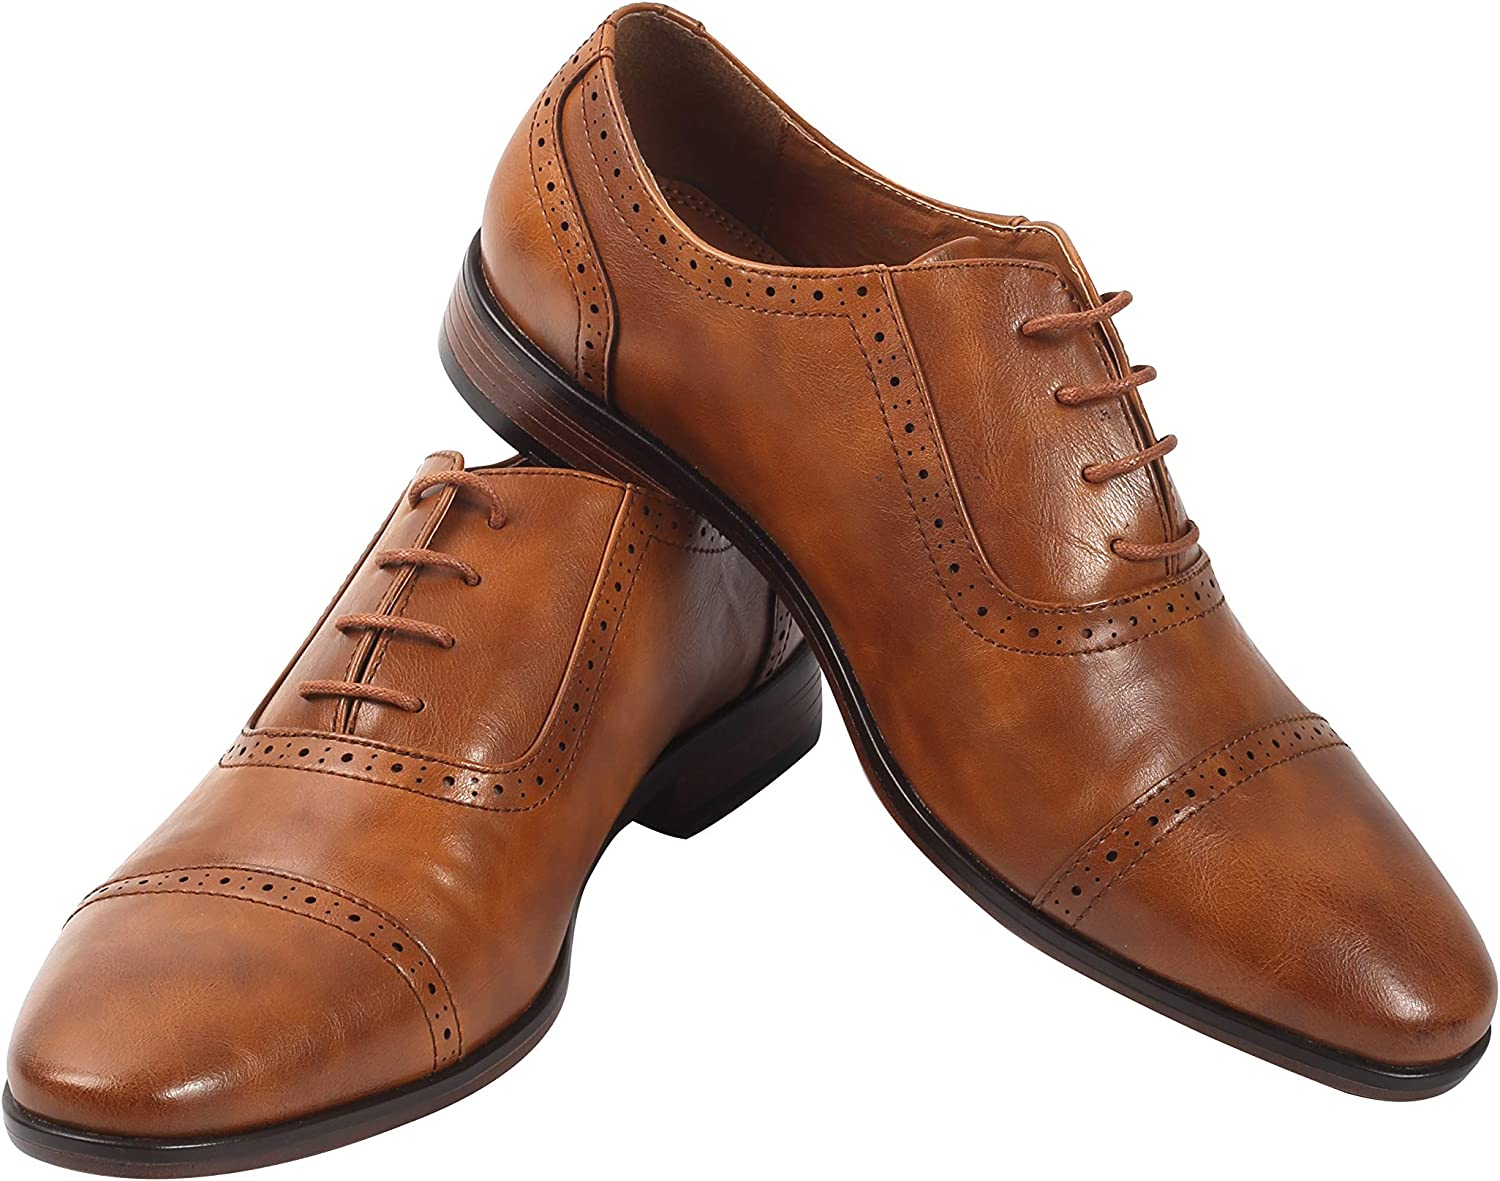 Men's Oxford Wingtip Lace Dress Shoes | Leather Dress Shoes for Work | Oxford Brogue Formal Party Shoes | Wedding Shoes | Quality Craftsmanship | Everyday Comfort